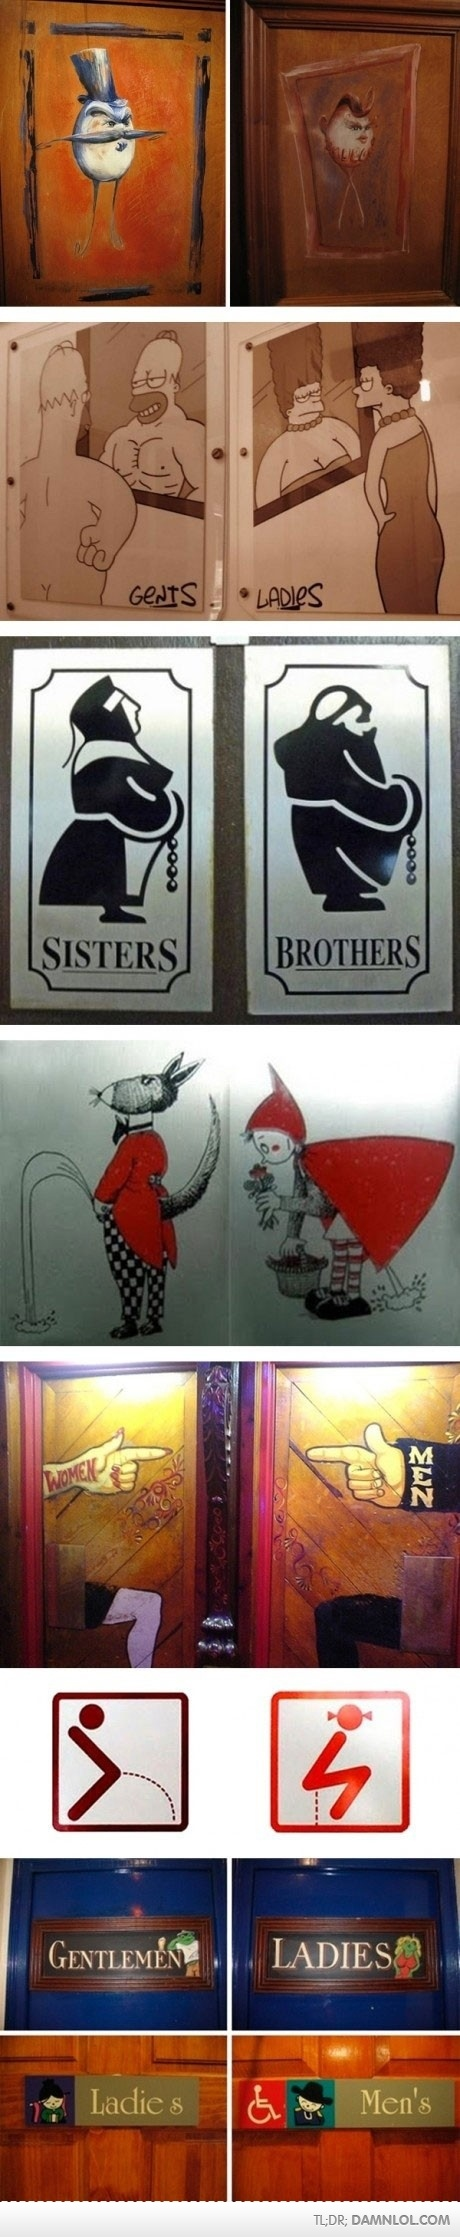 Funny Toilet Signs Part 1